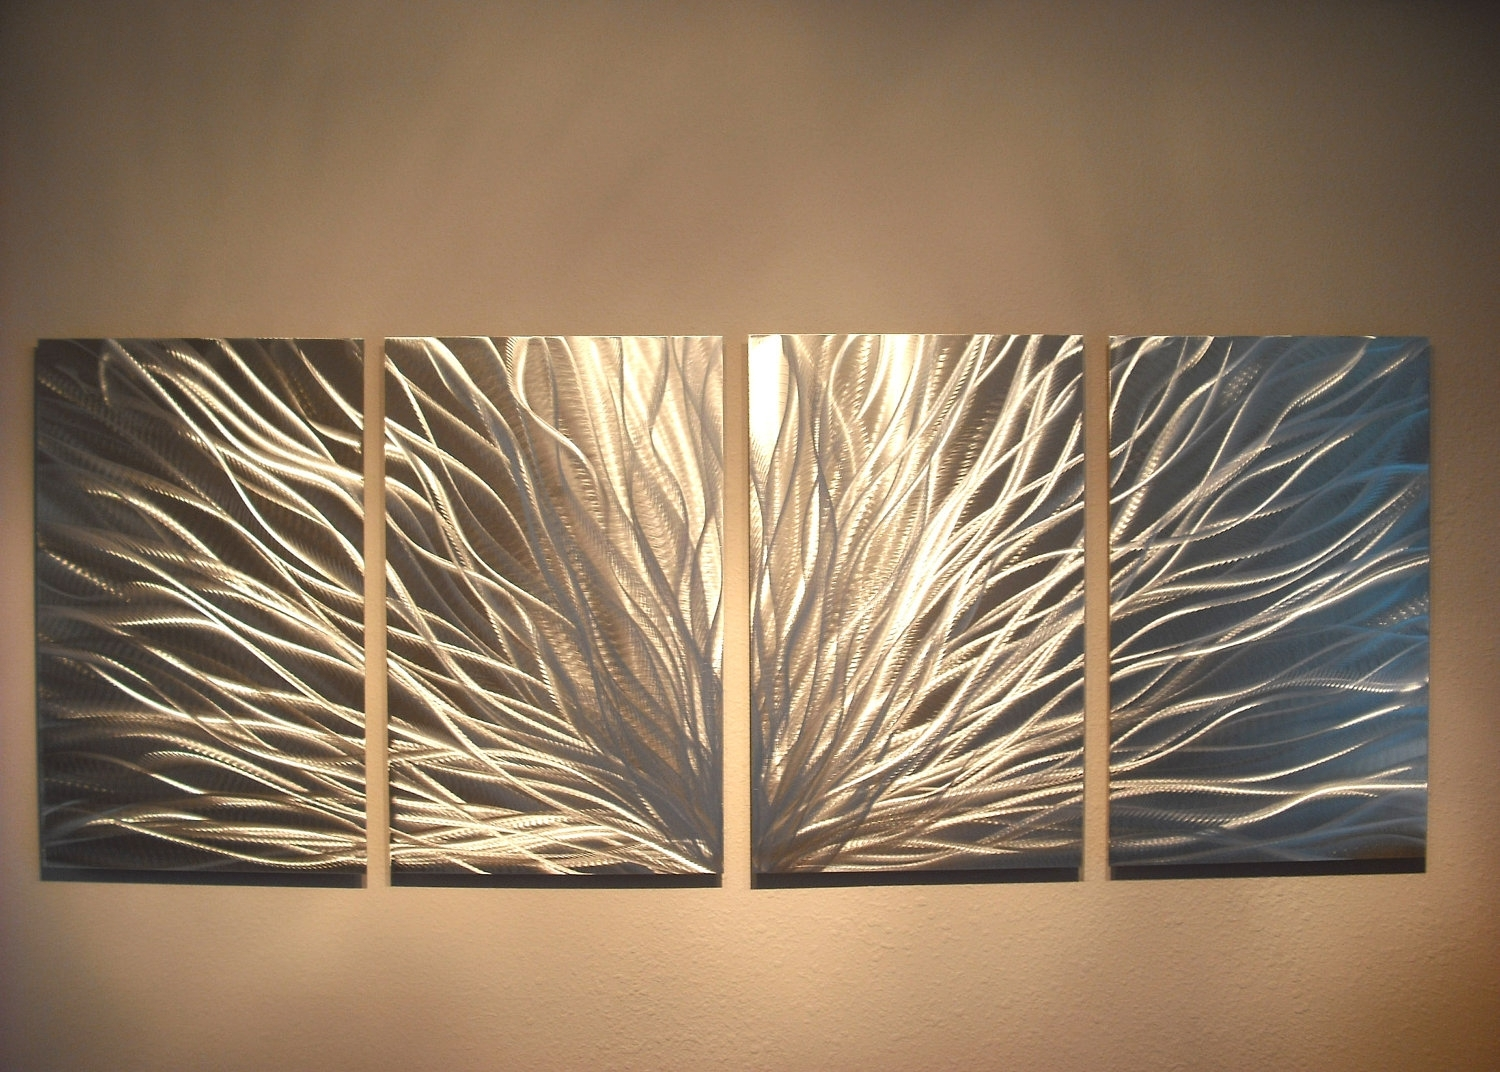 Radiance – Abstract Metal Wall Art Contemporary Modern Decor For Most Up To Date Abstract Metal Wall Art Panels (Gallery 7 of 20)